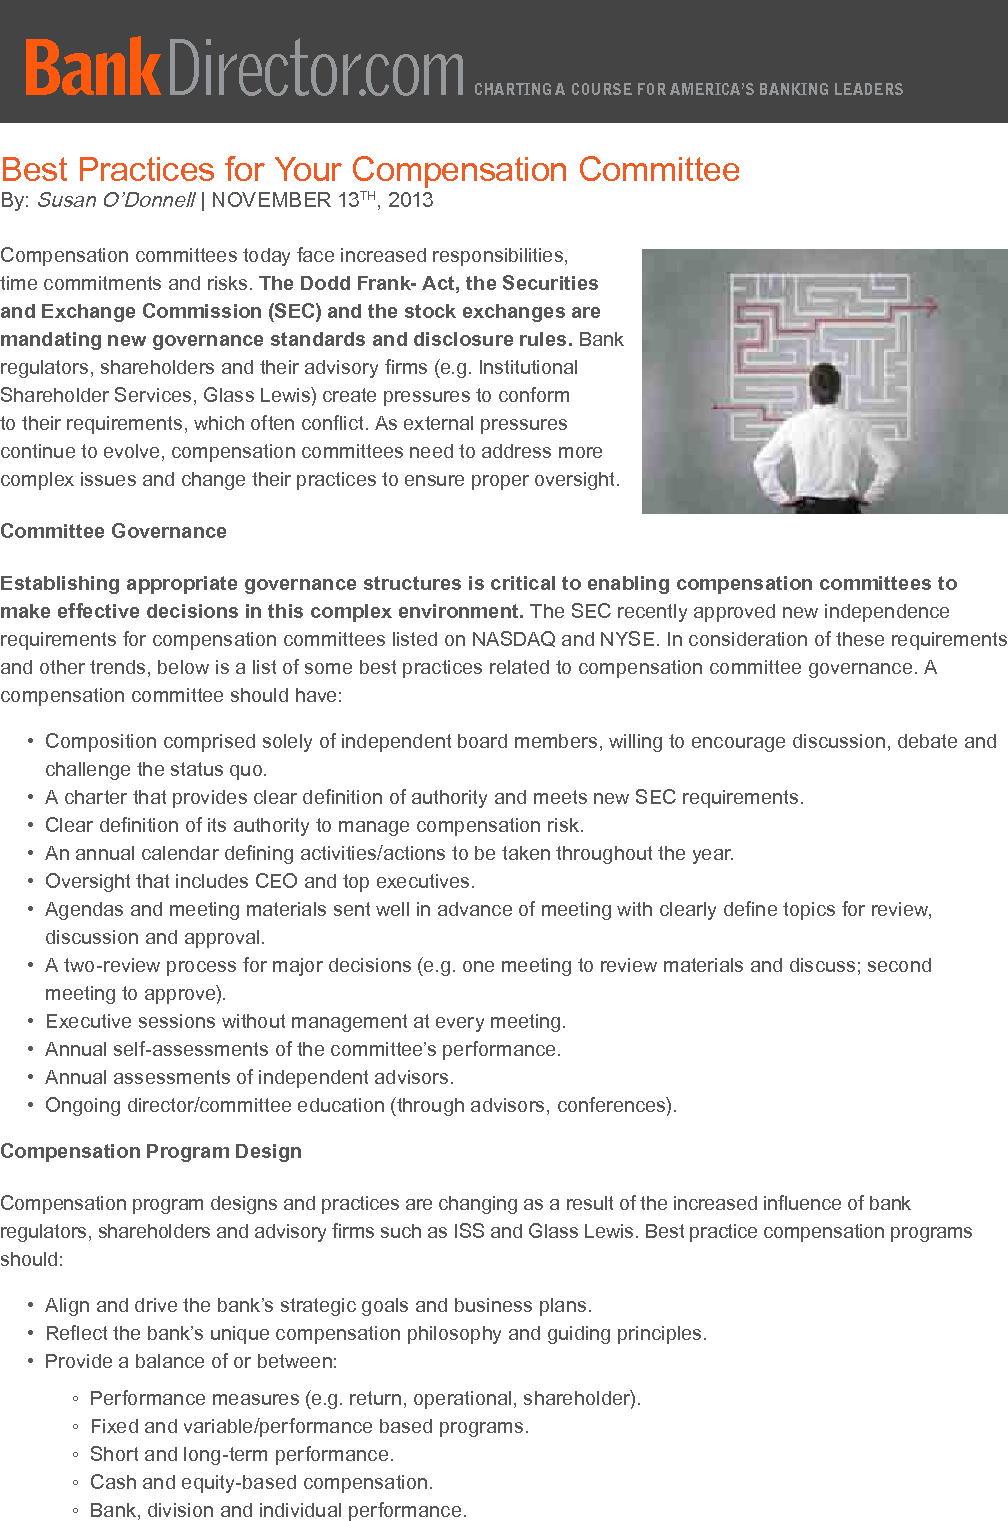 Compensation Committee Best Practices (PDF)